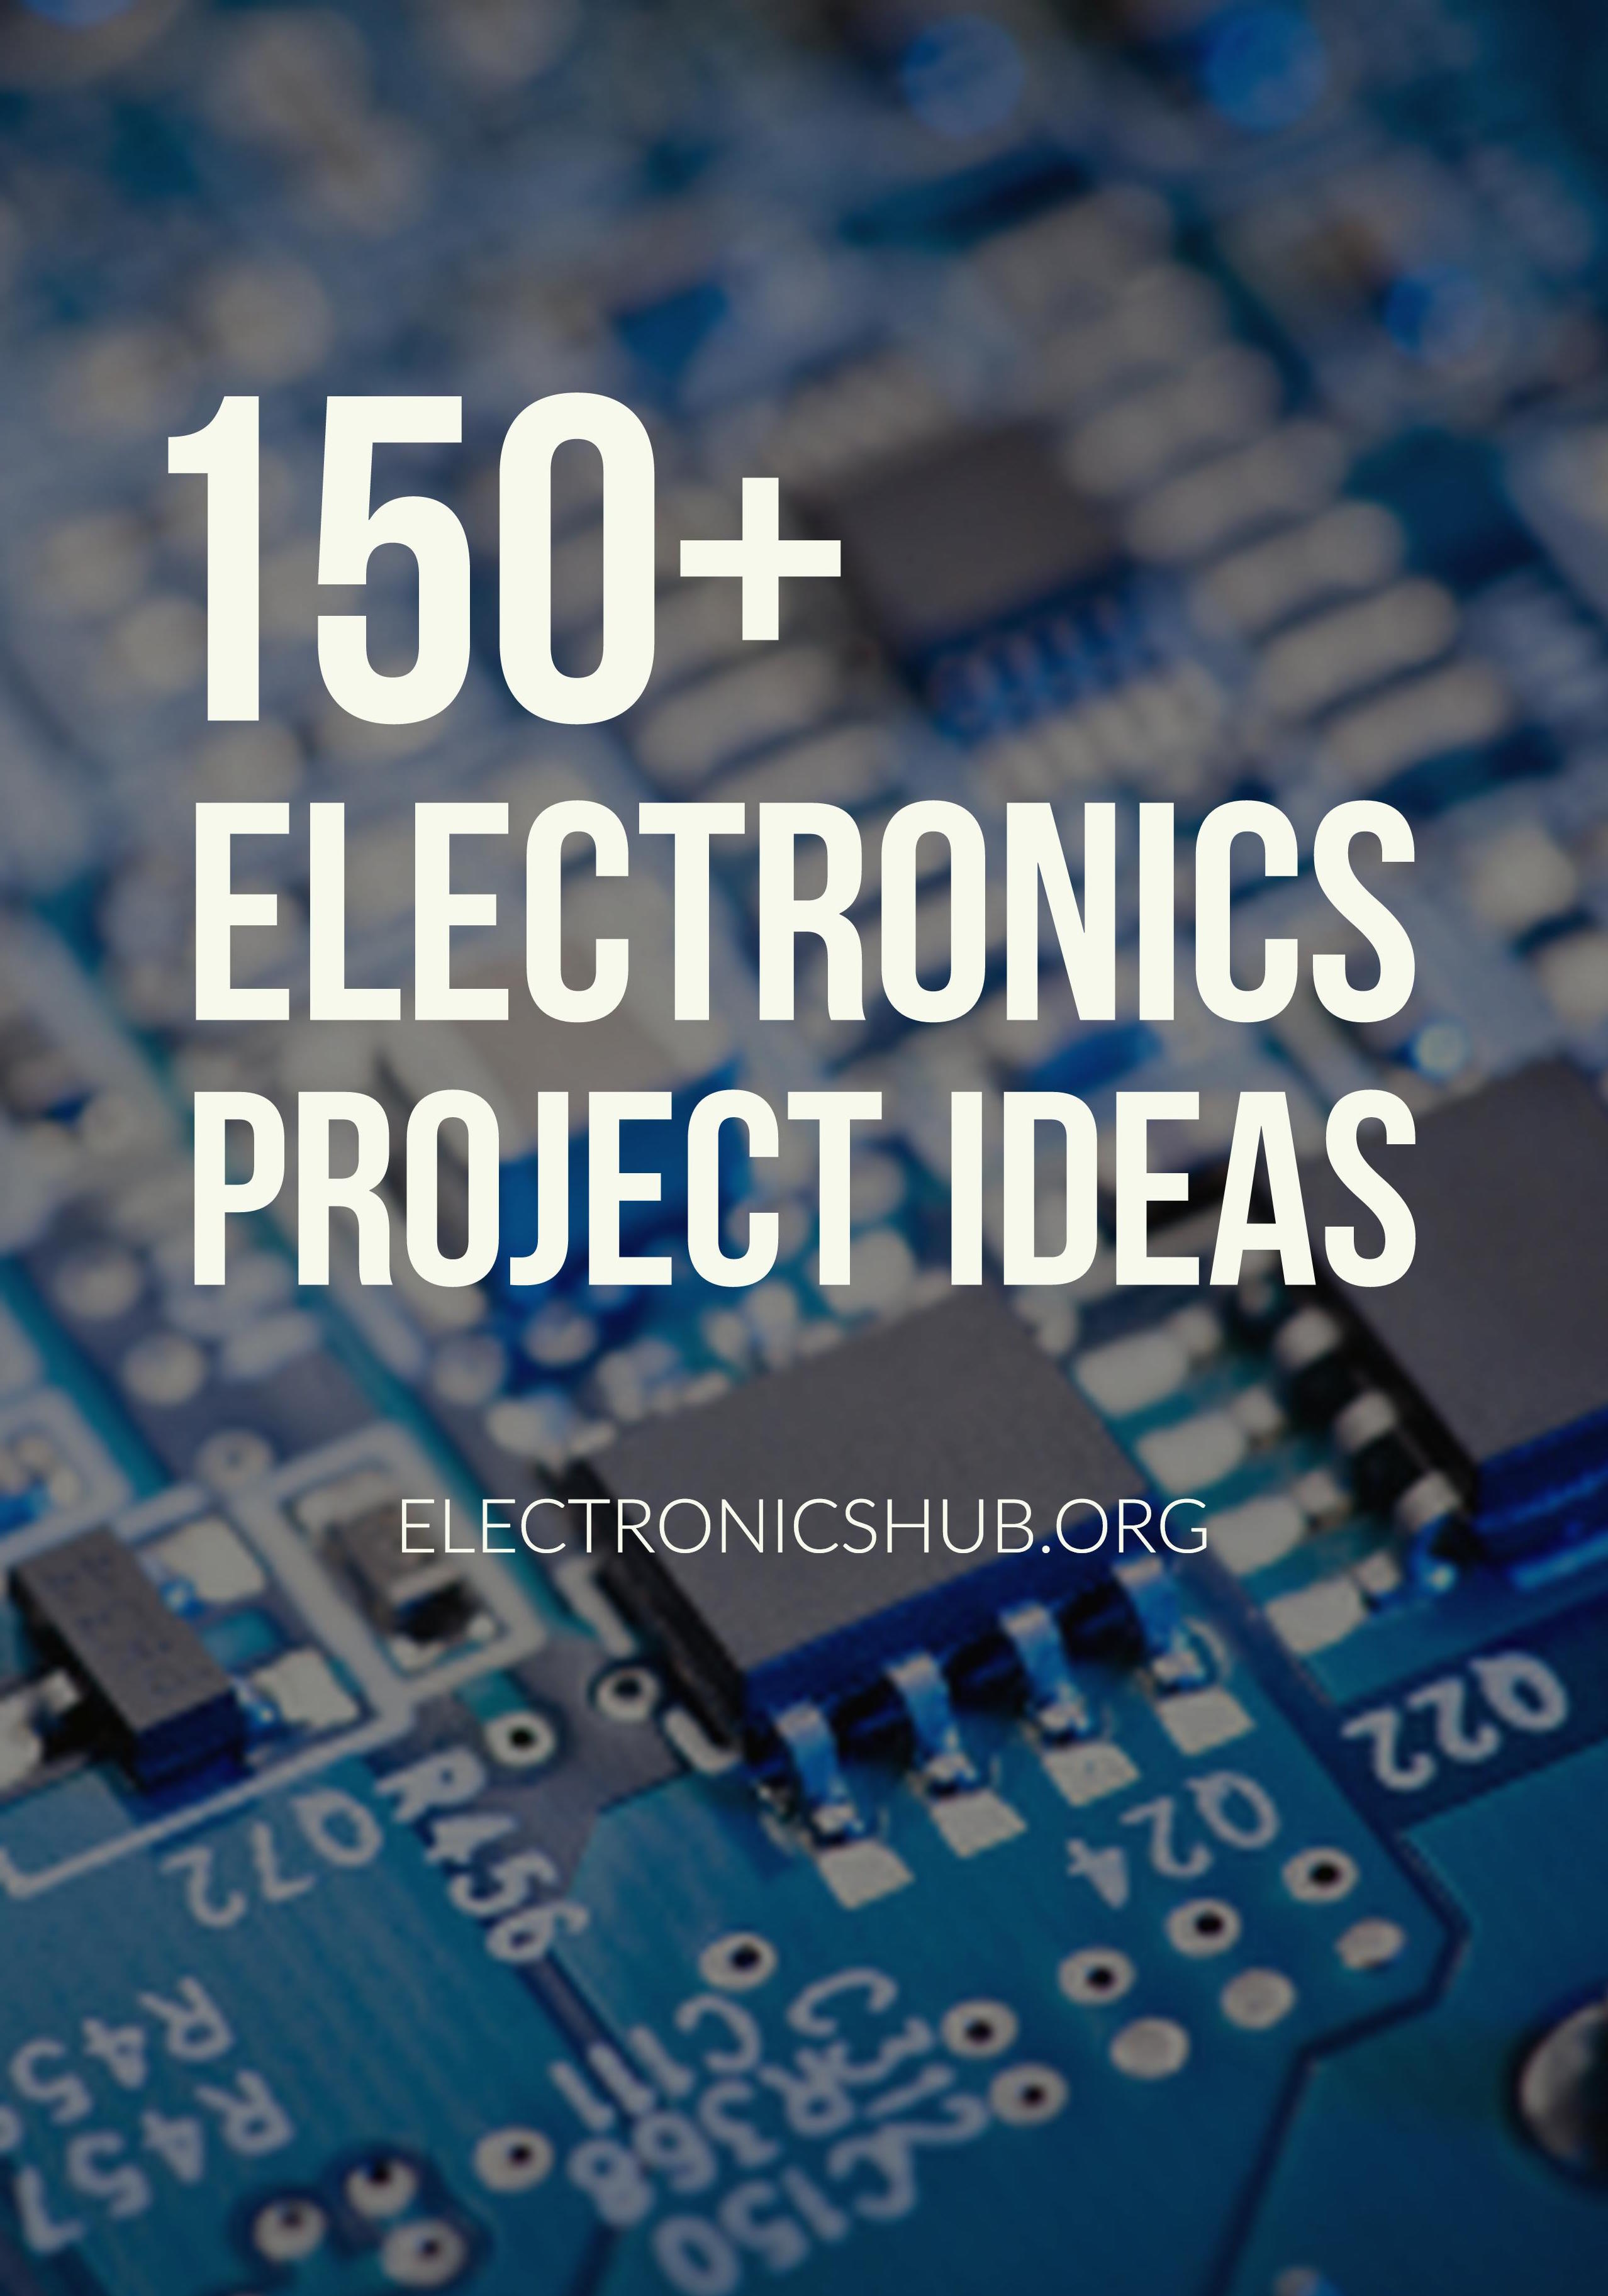 150 Electronics Projects For Engineering Students Lowpower Amplifier With Digital Volume Control Amp Circuit Diagram